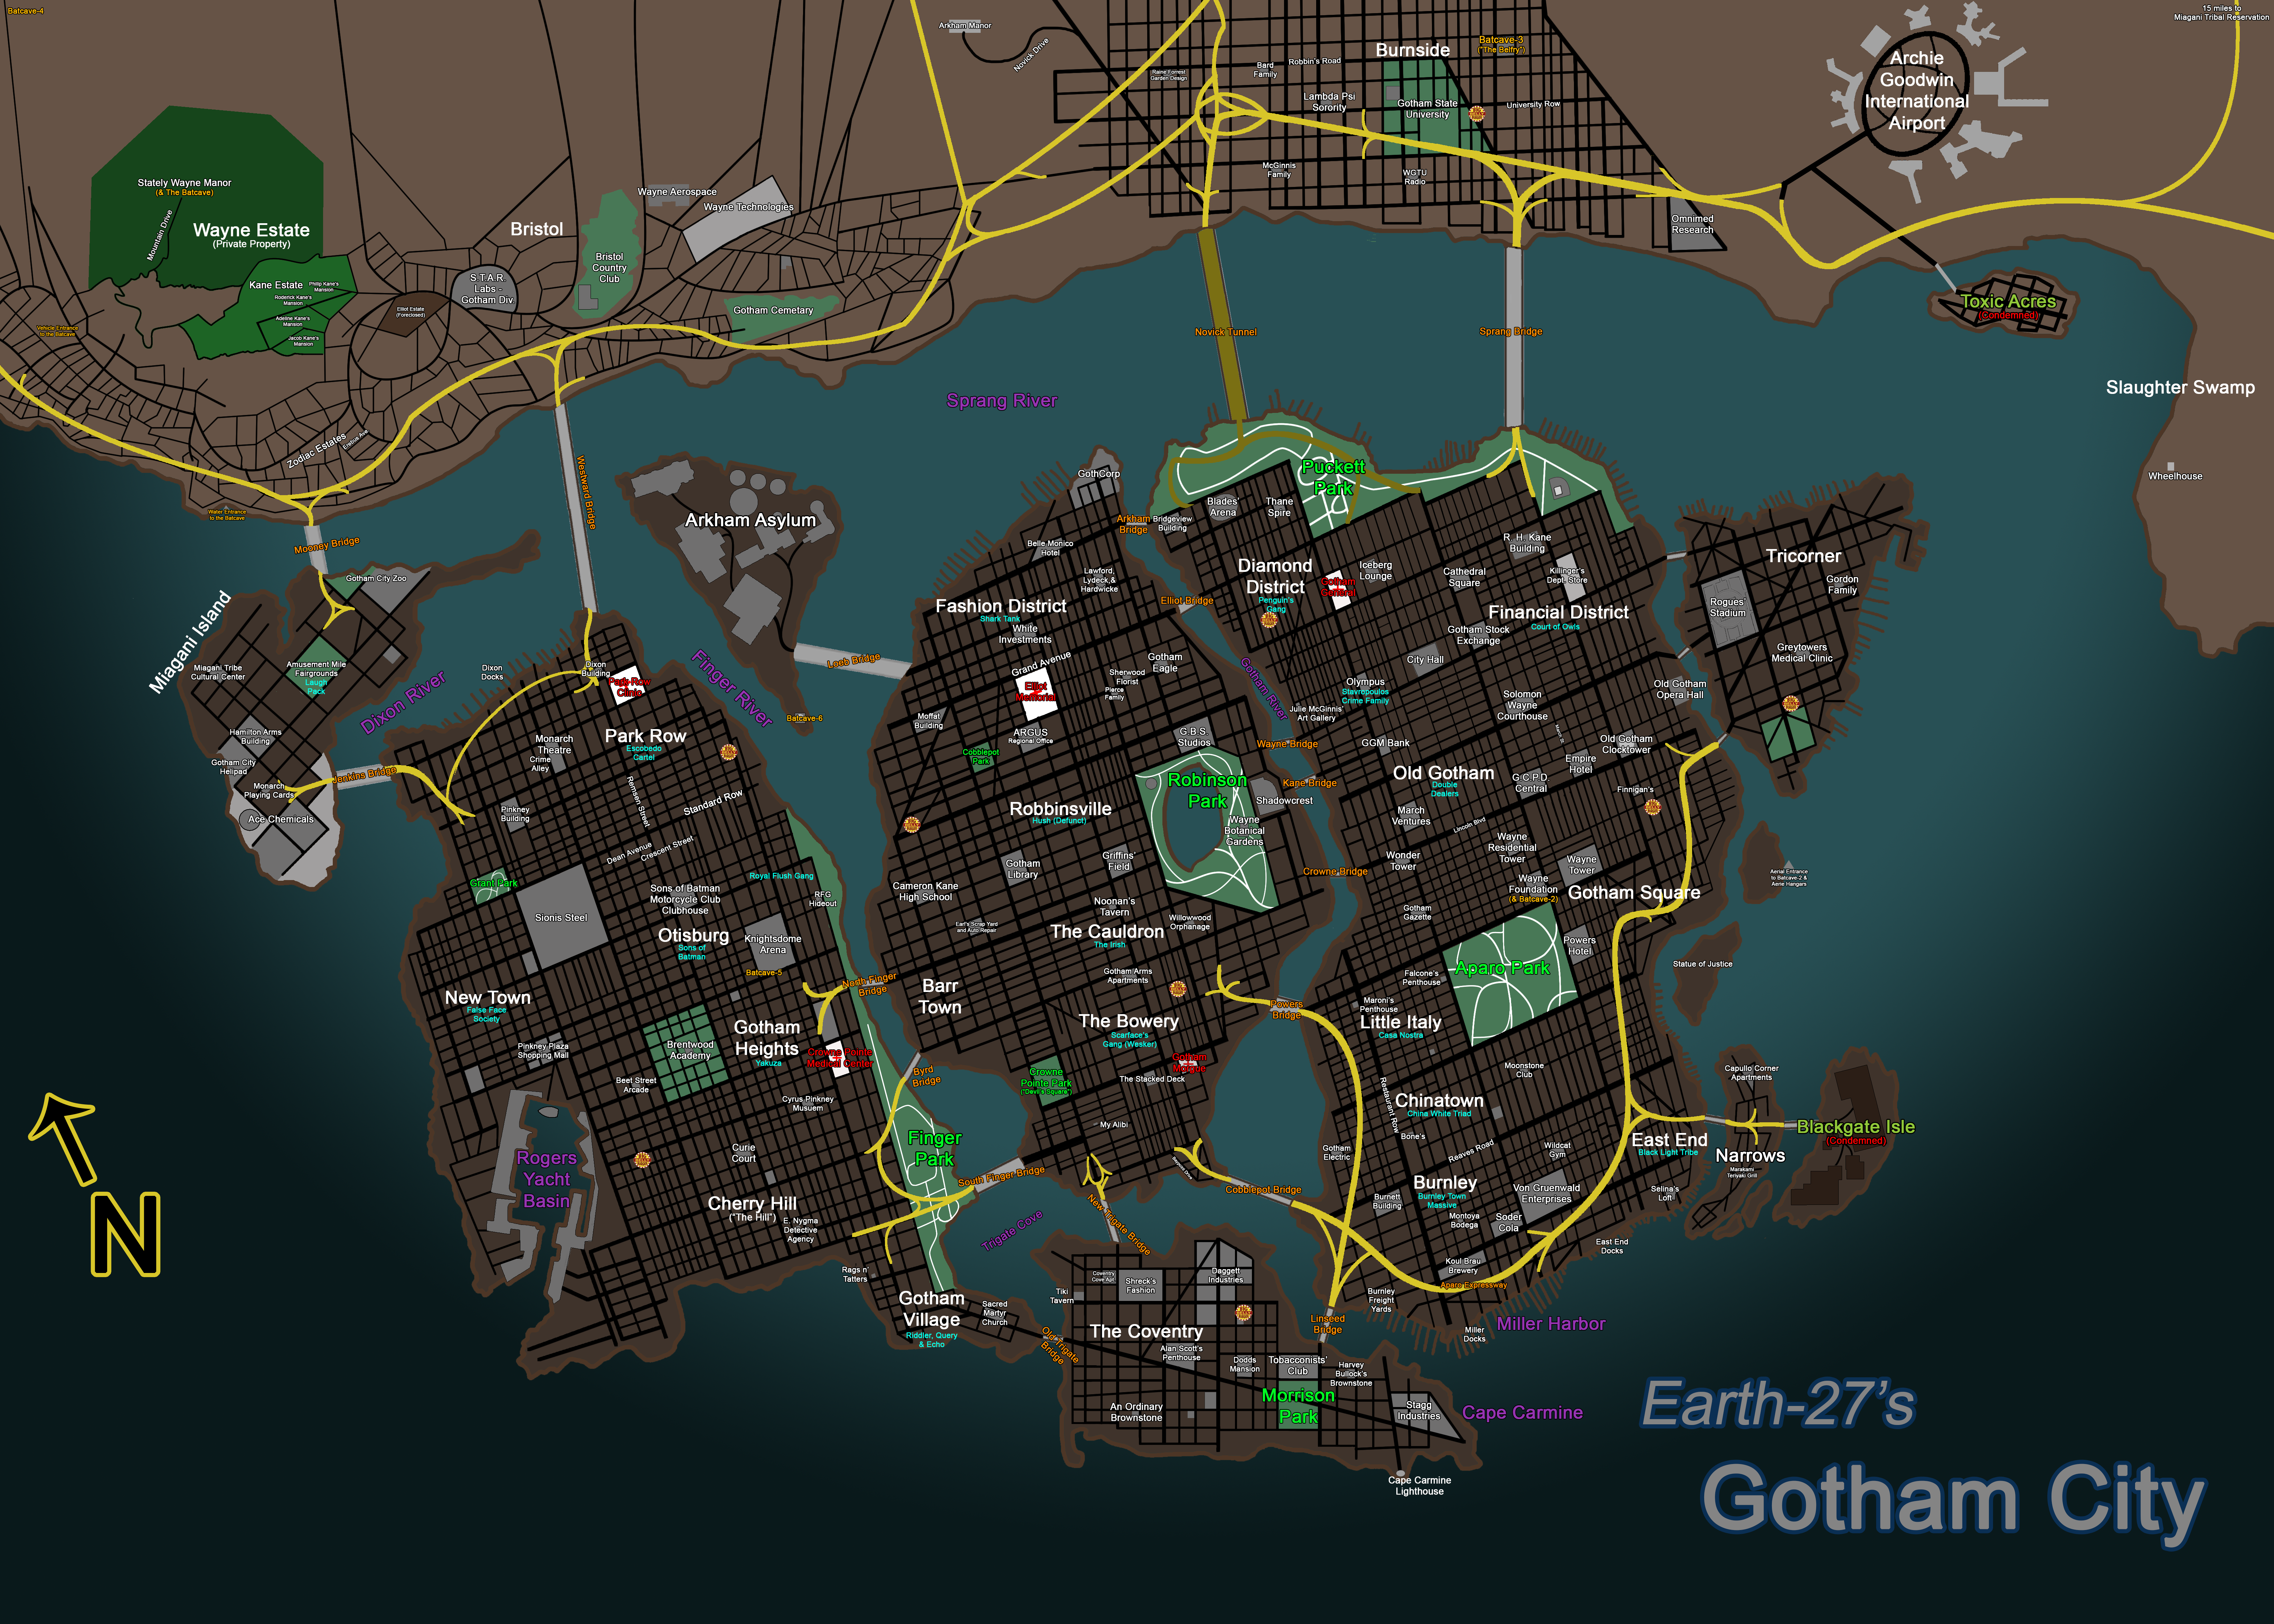 Earth 27 For Nitwits Gotham City By Roysovitch On Deviantart